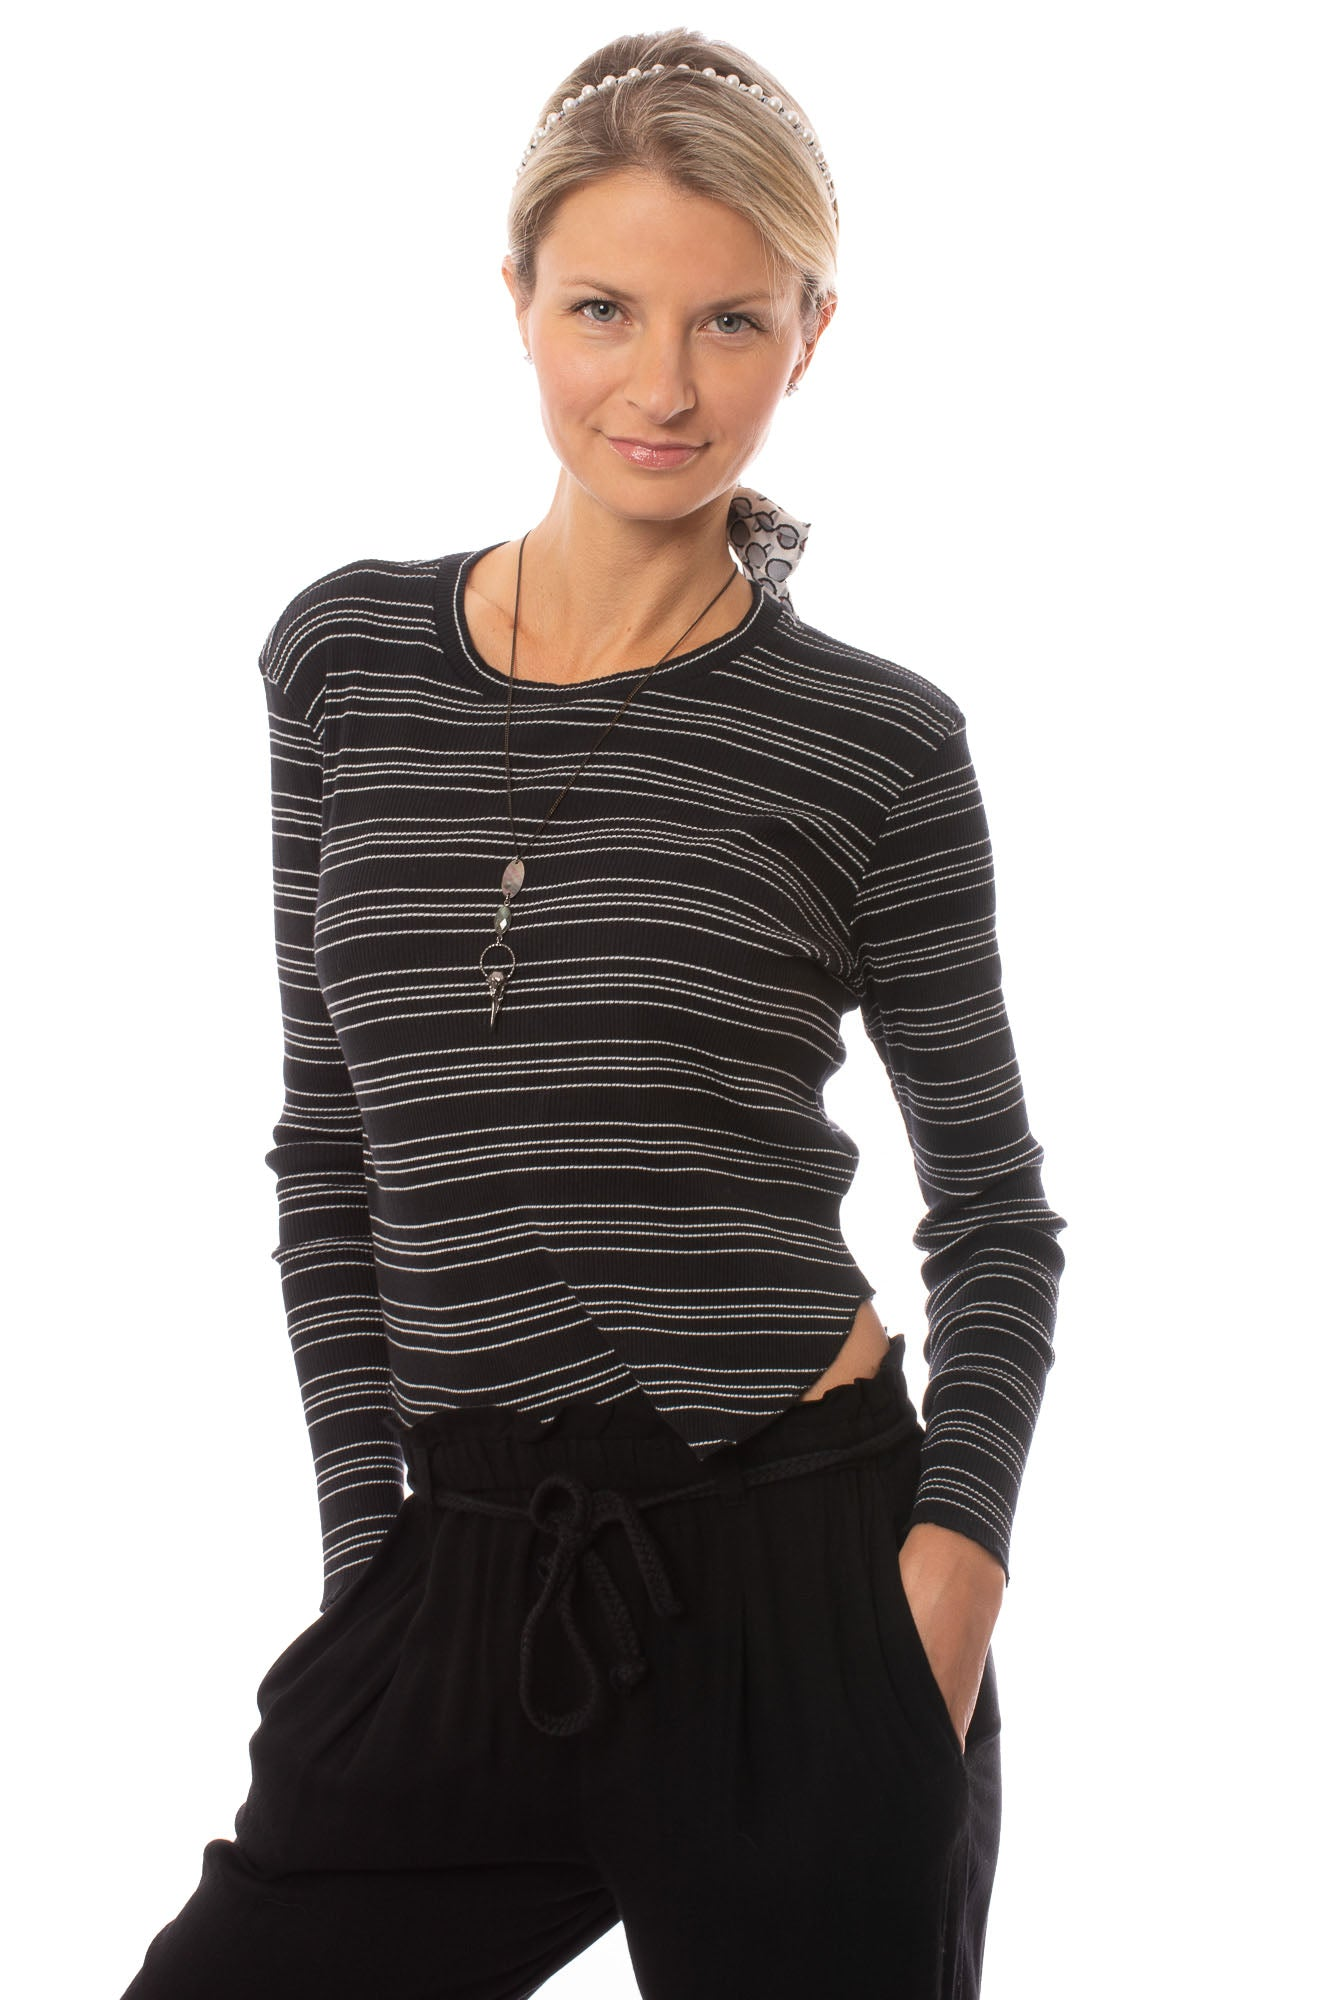 Bobi - Long Sleeve Crop T W/Stripes (579-41700, Black & White)